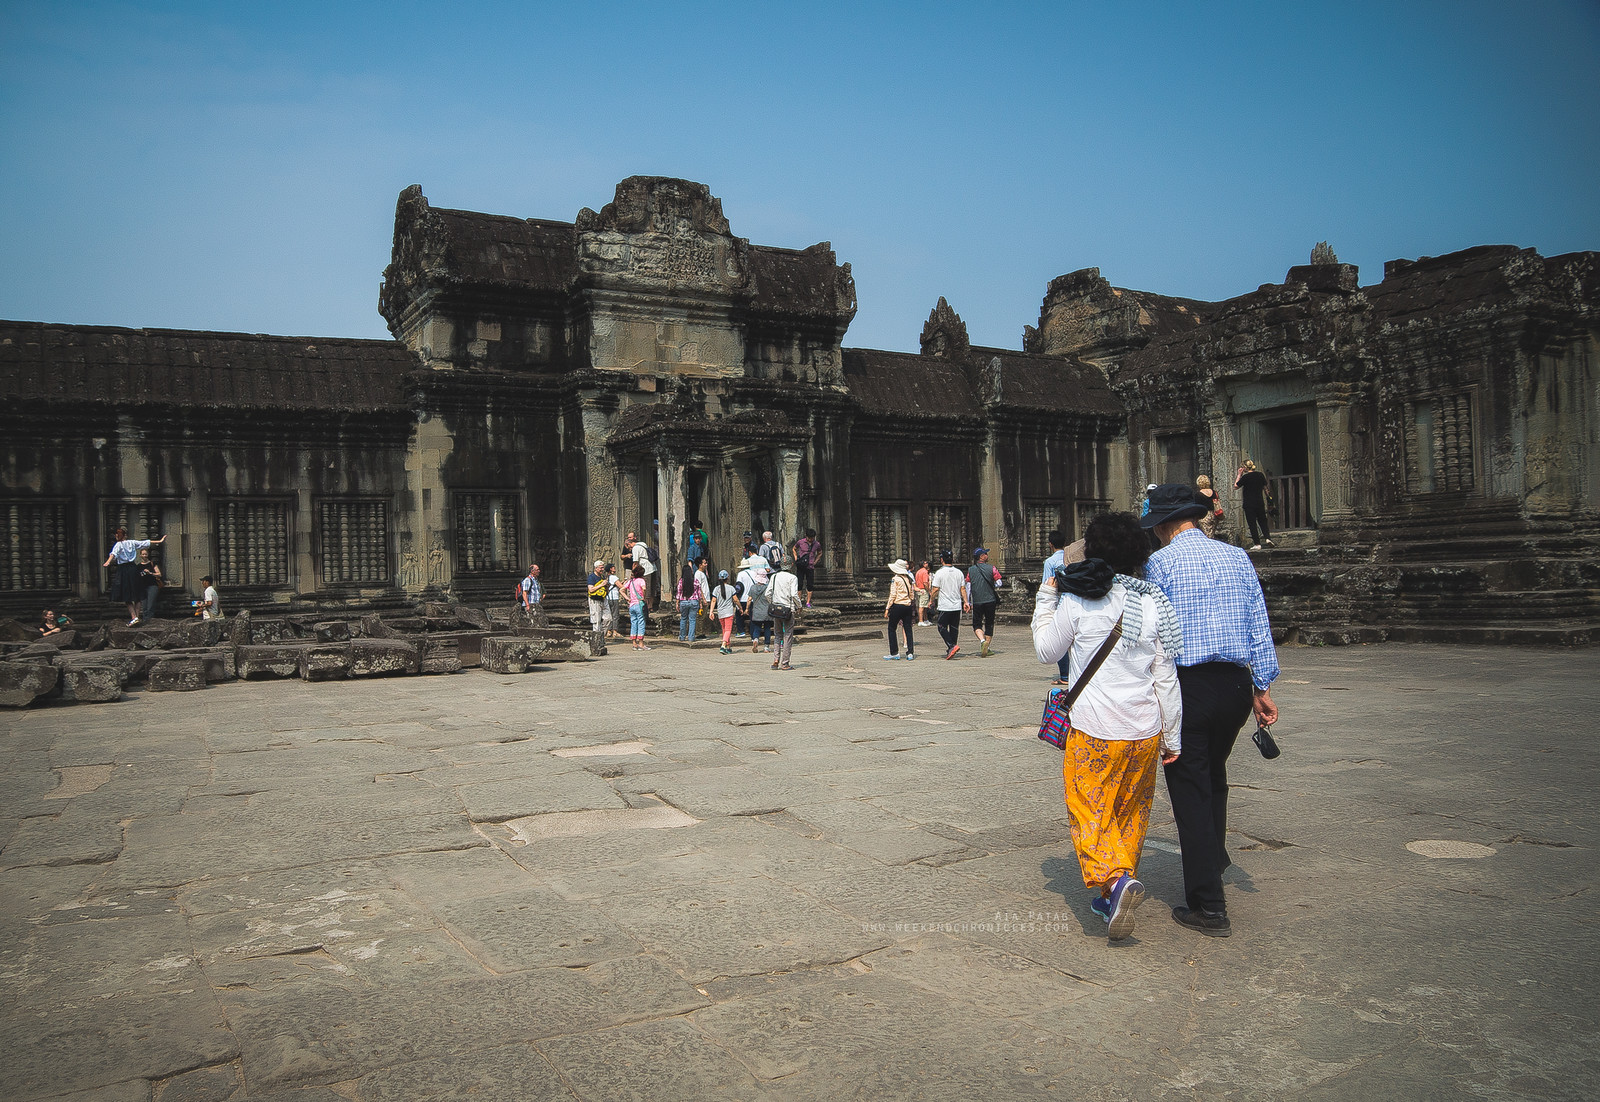 A couple spending their day at the historic Khmerian temples